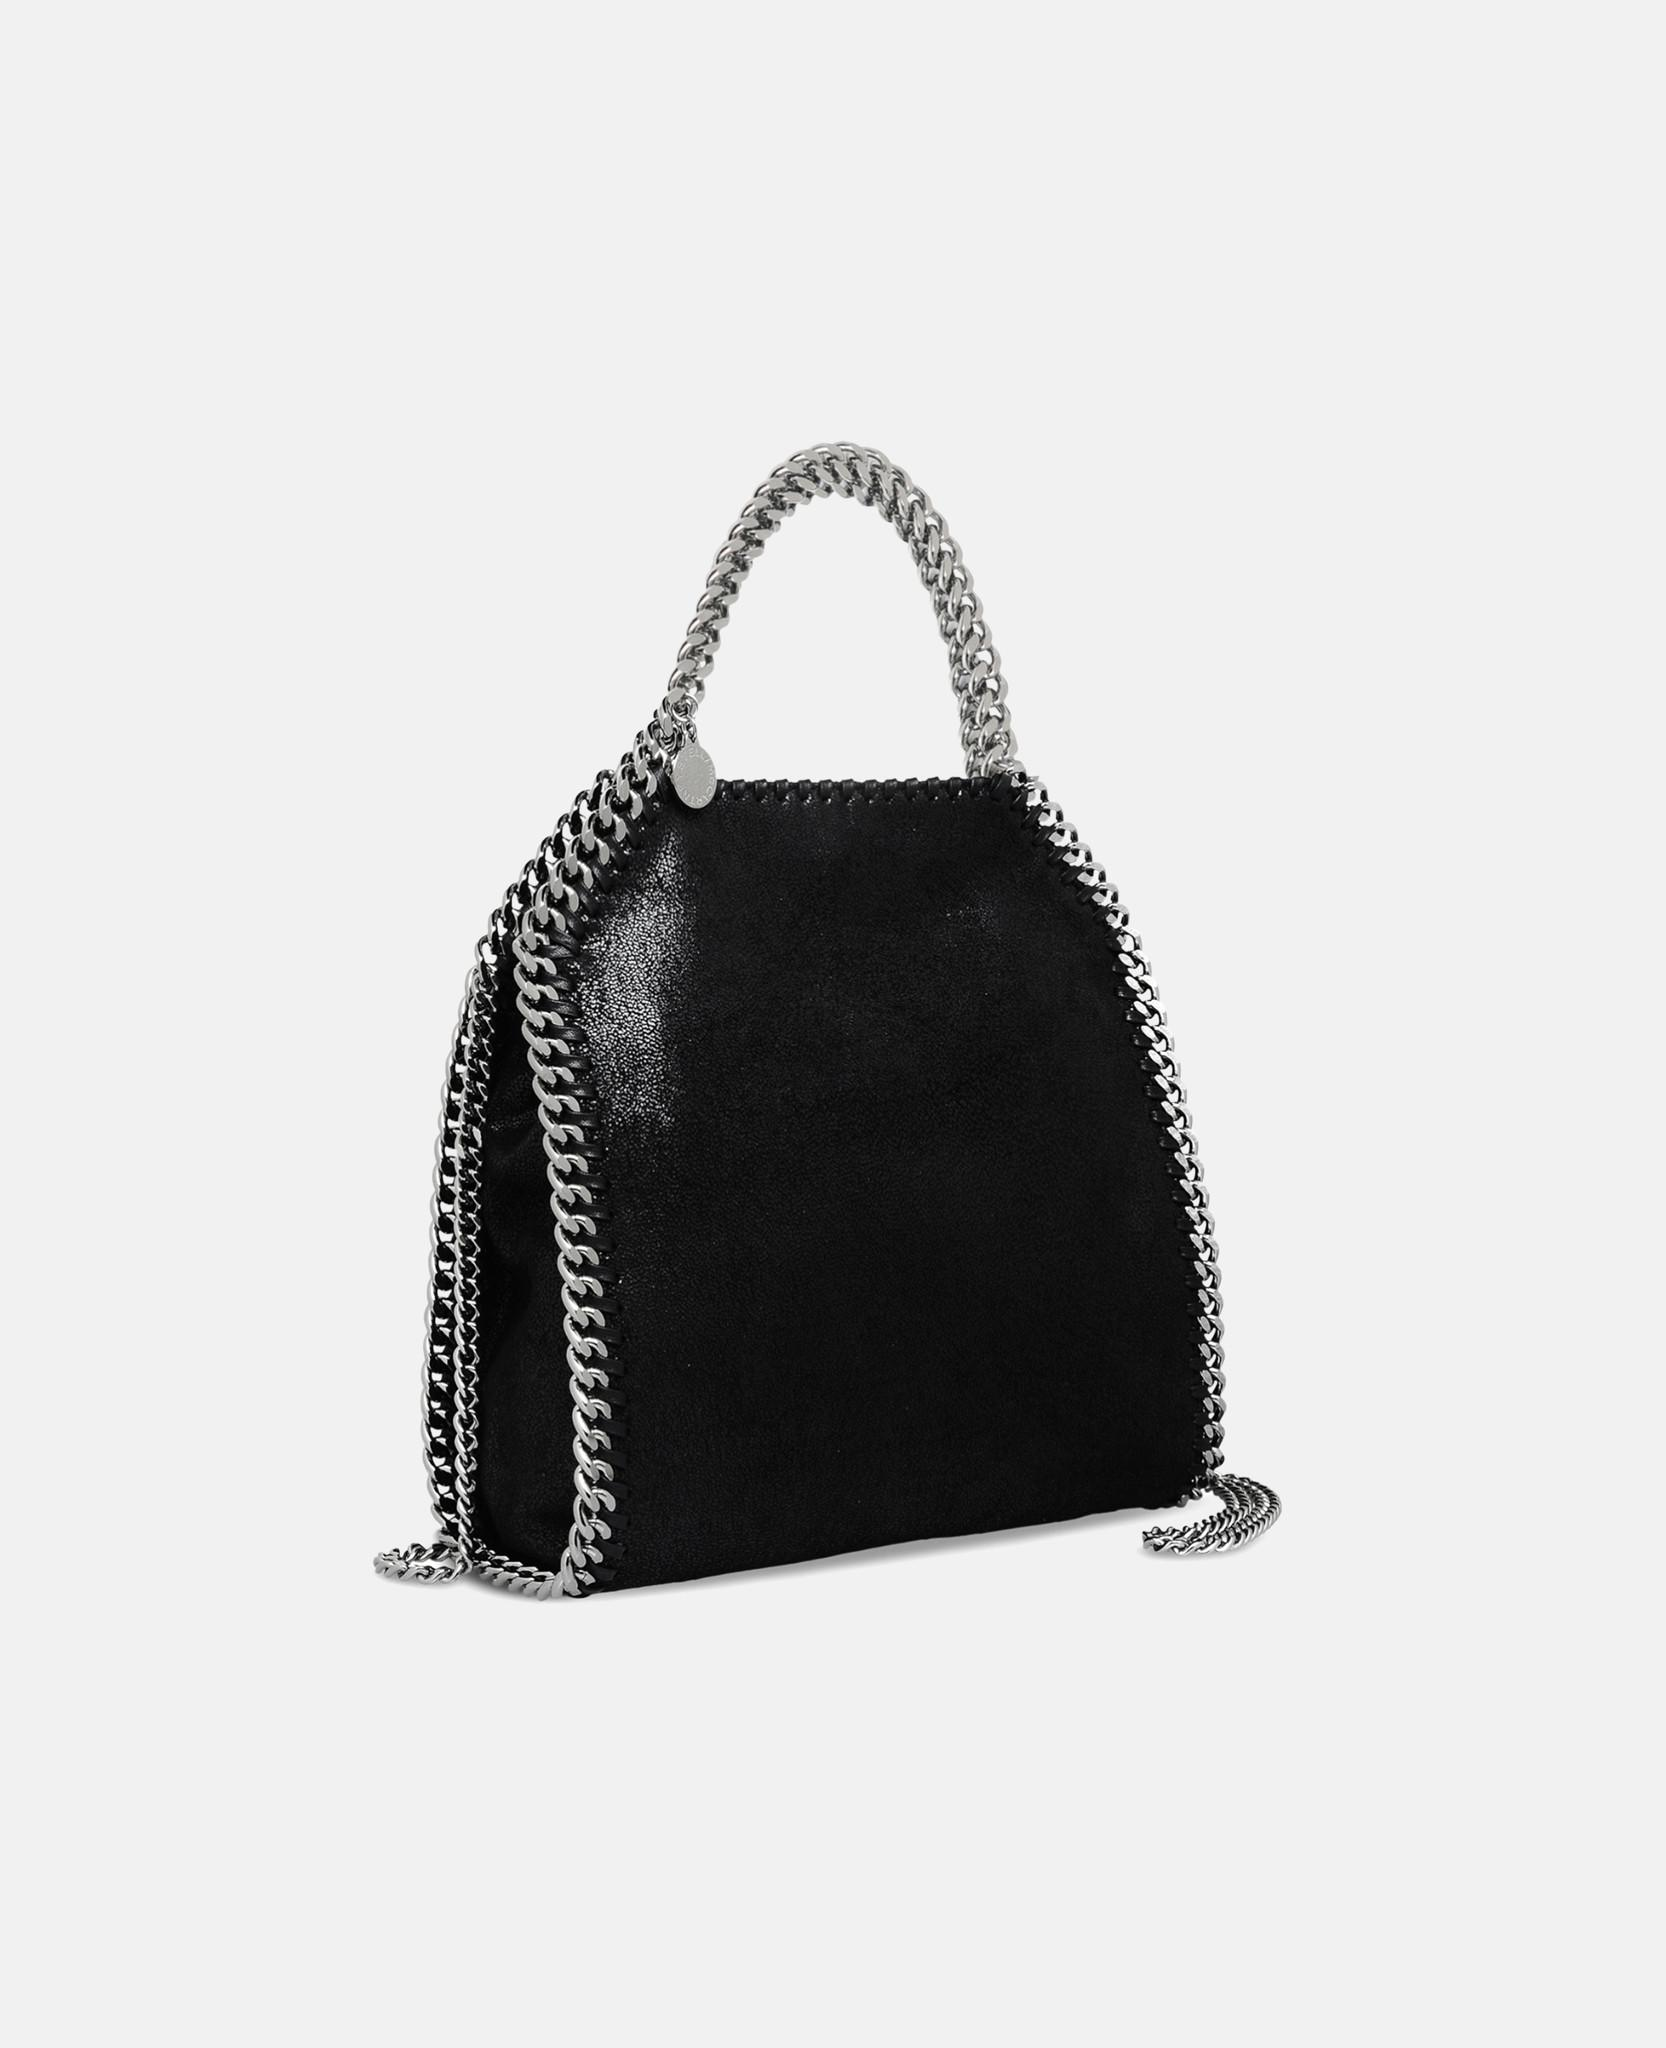 40f5c76d799d Stella McCartney Mini Falabella Tote in Black - Lyst